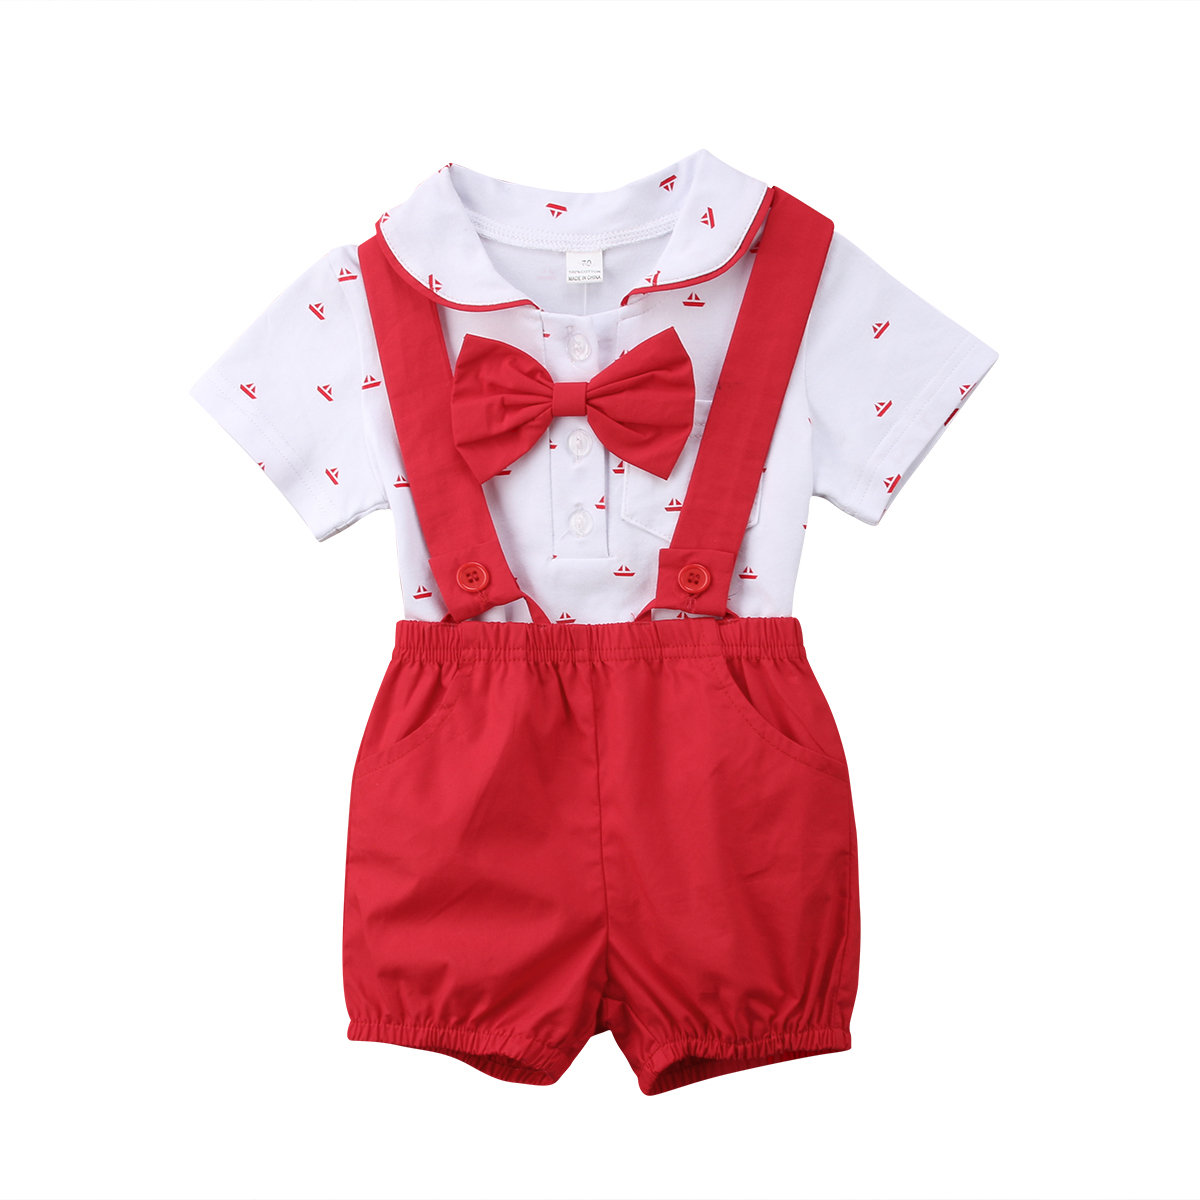 Pudcoco Newborn Toddler Baby Boy Girl Clothes Short Sleeve Bownot Bodysuit+Short Pants Outfits Set 0-24 Months Helen115